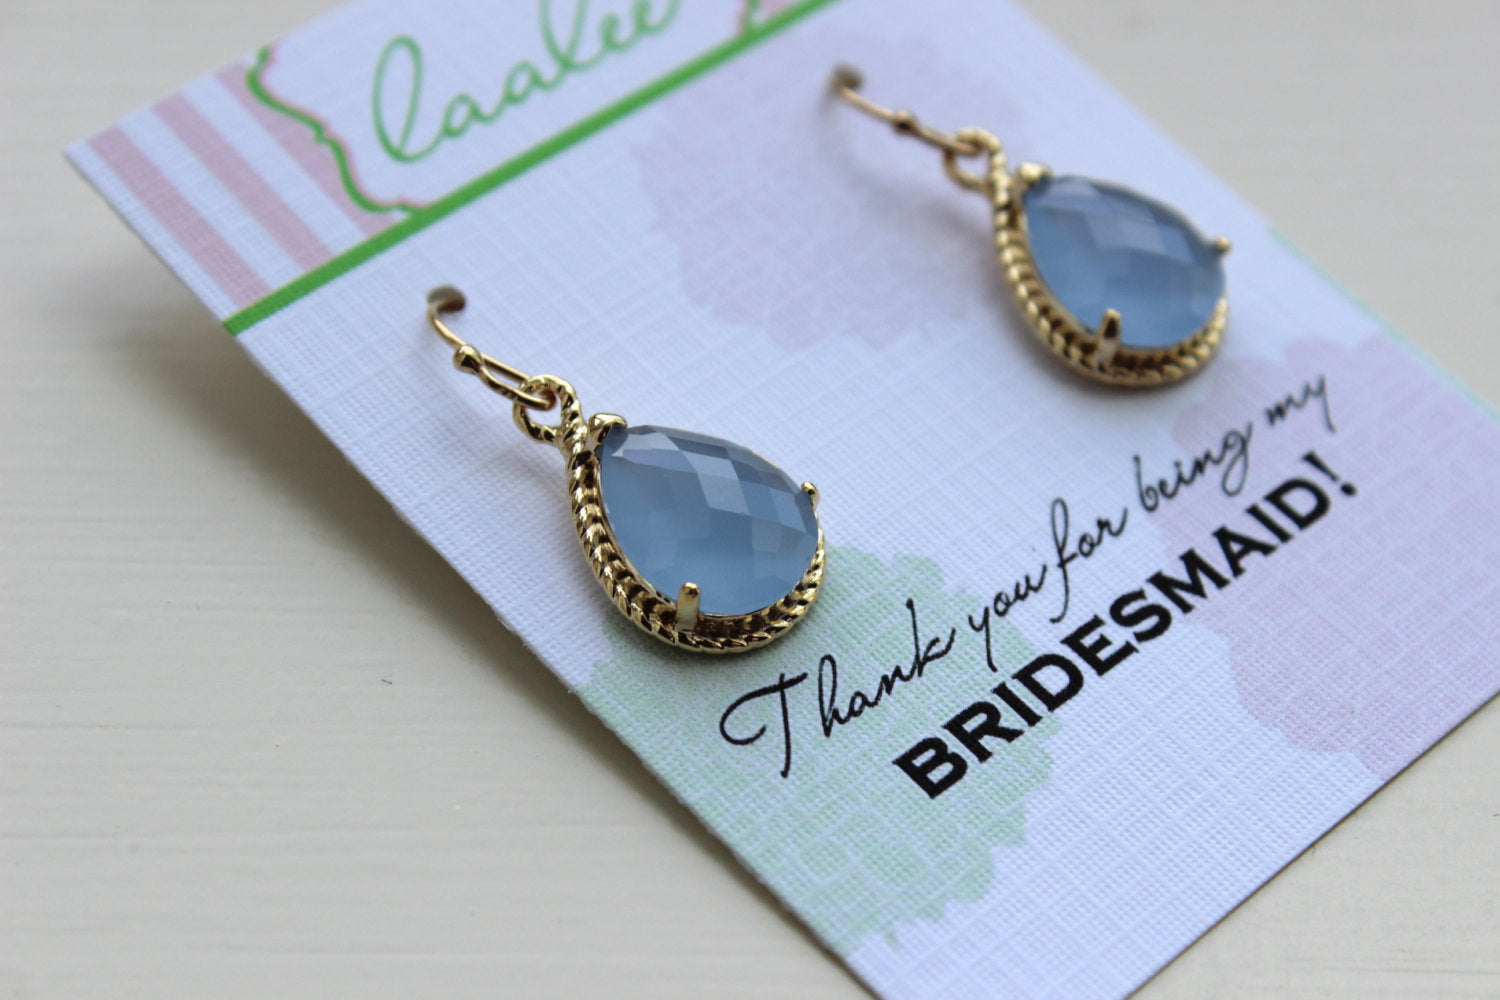 Gold Periwinkle Earrings Wedding Jewelry - Blue Bridesmaid Earrings Bridesmaid Gift - Periwinkle Bridesmaid Personalized Jewelry Under 25